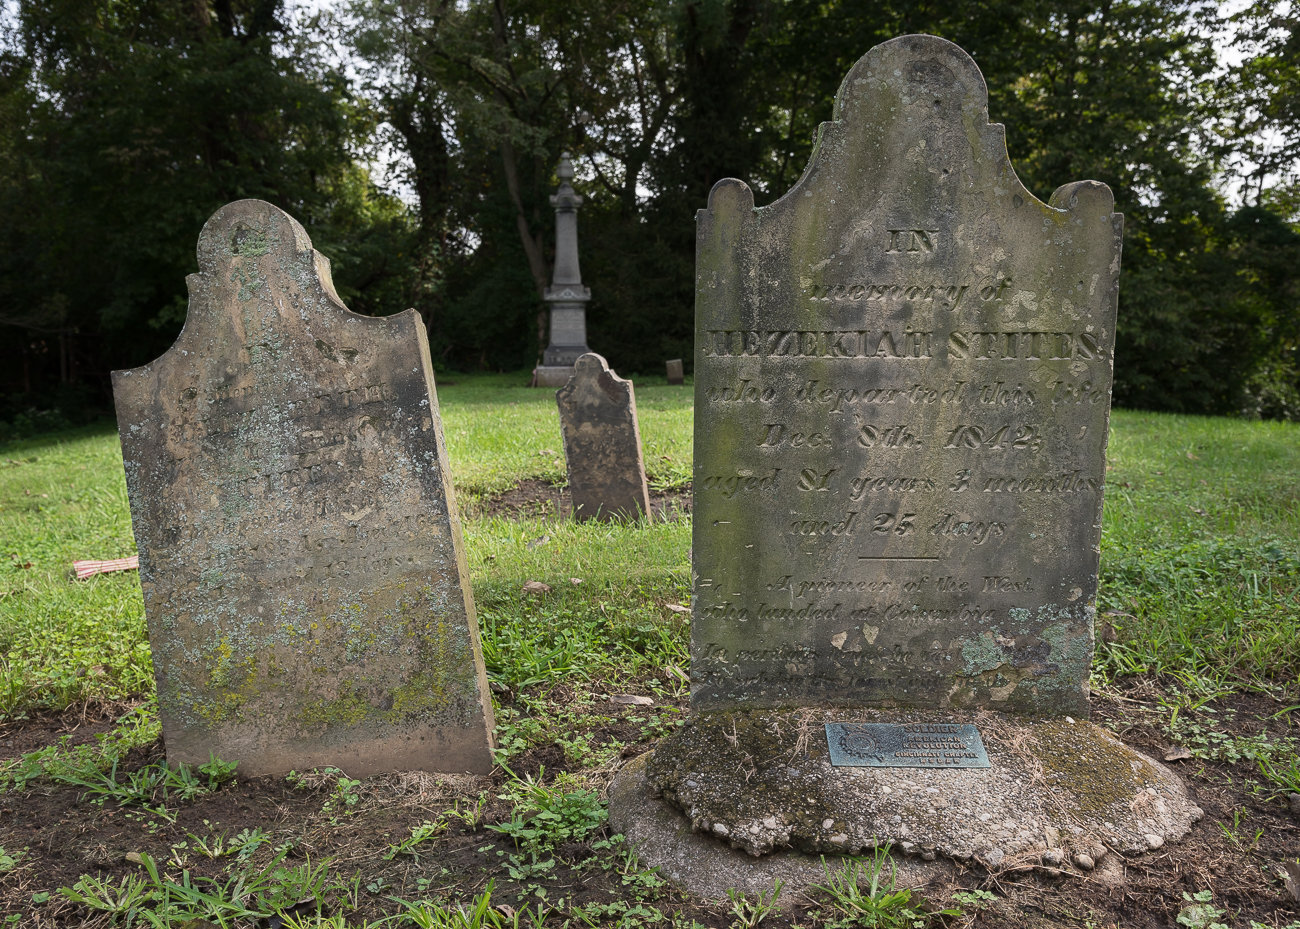 The oldest grave in the cemetery is for a 5-month old named Phebe Stites (died in March, 1797). Many of the grave stones are so eroded and broken, they're unreadable 200 years later. / Image: Phil Armstrong, Cincinnati Refined // Published: 10.3.18<br>